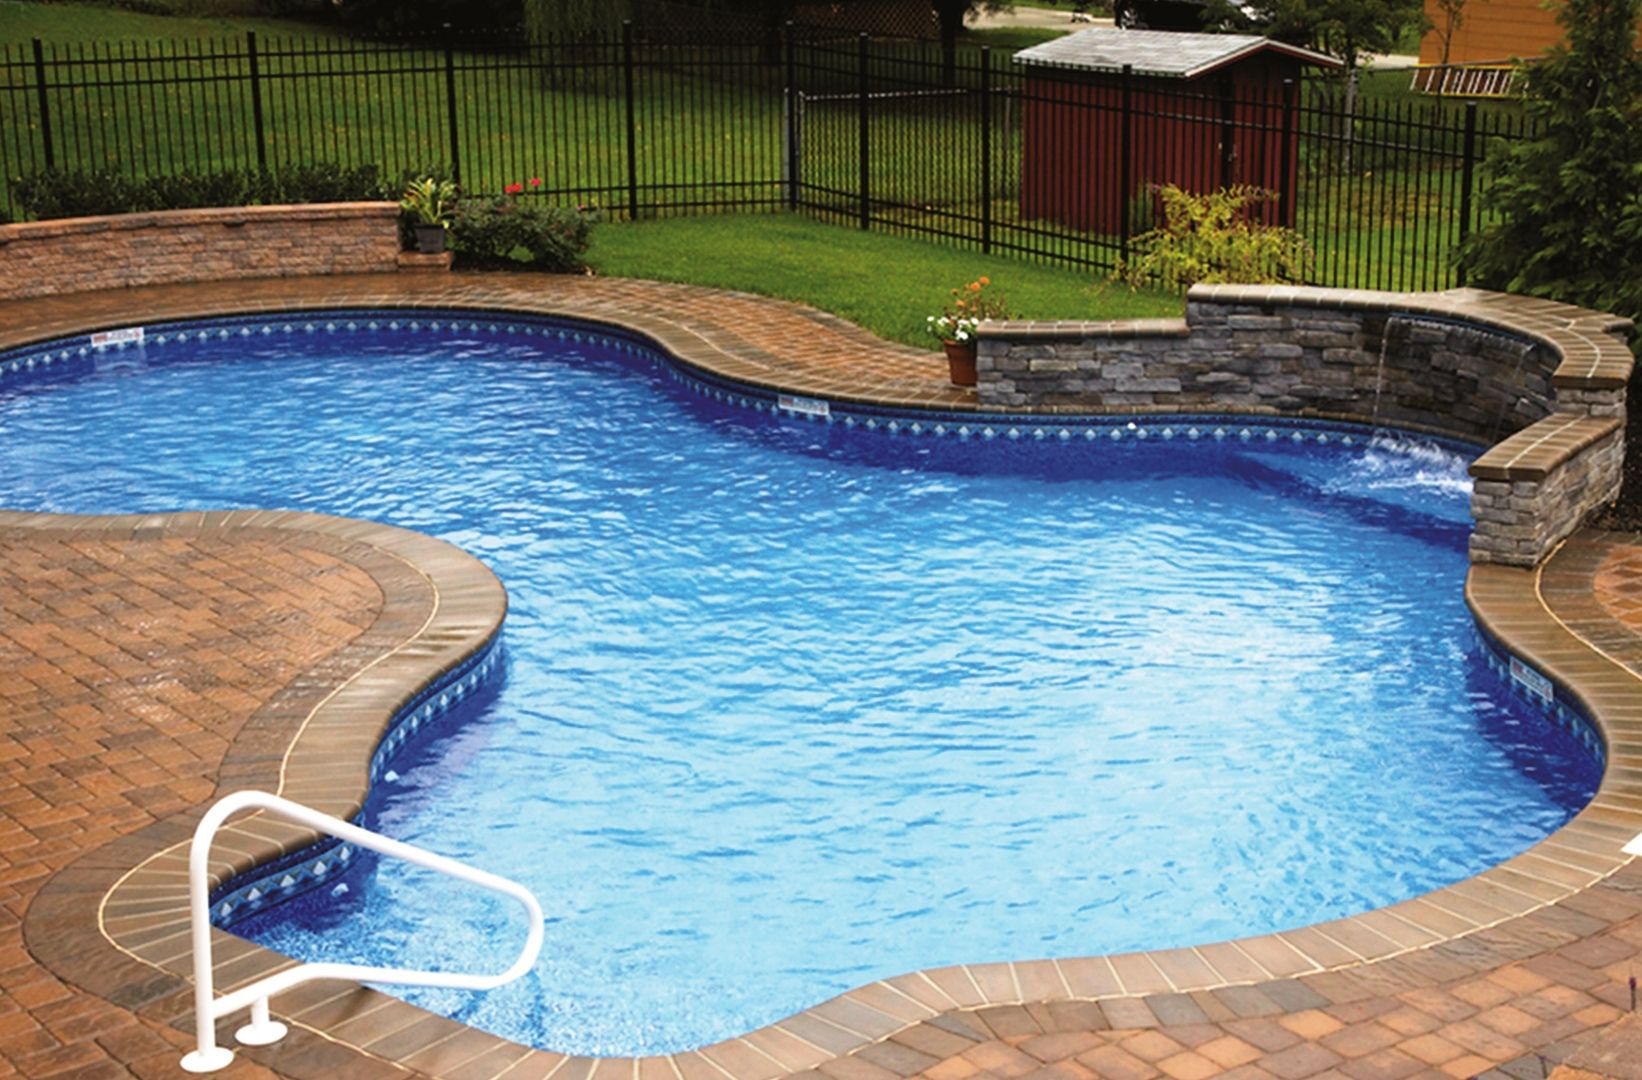 Back yard swimming pool ideas swimming pool design for Swimming pool ideas for backyard